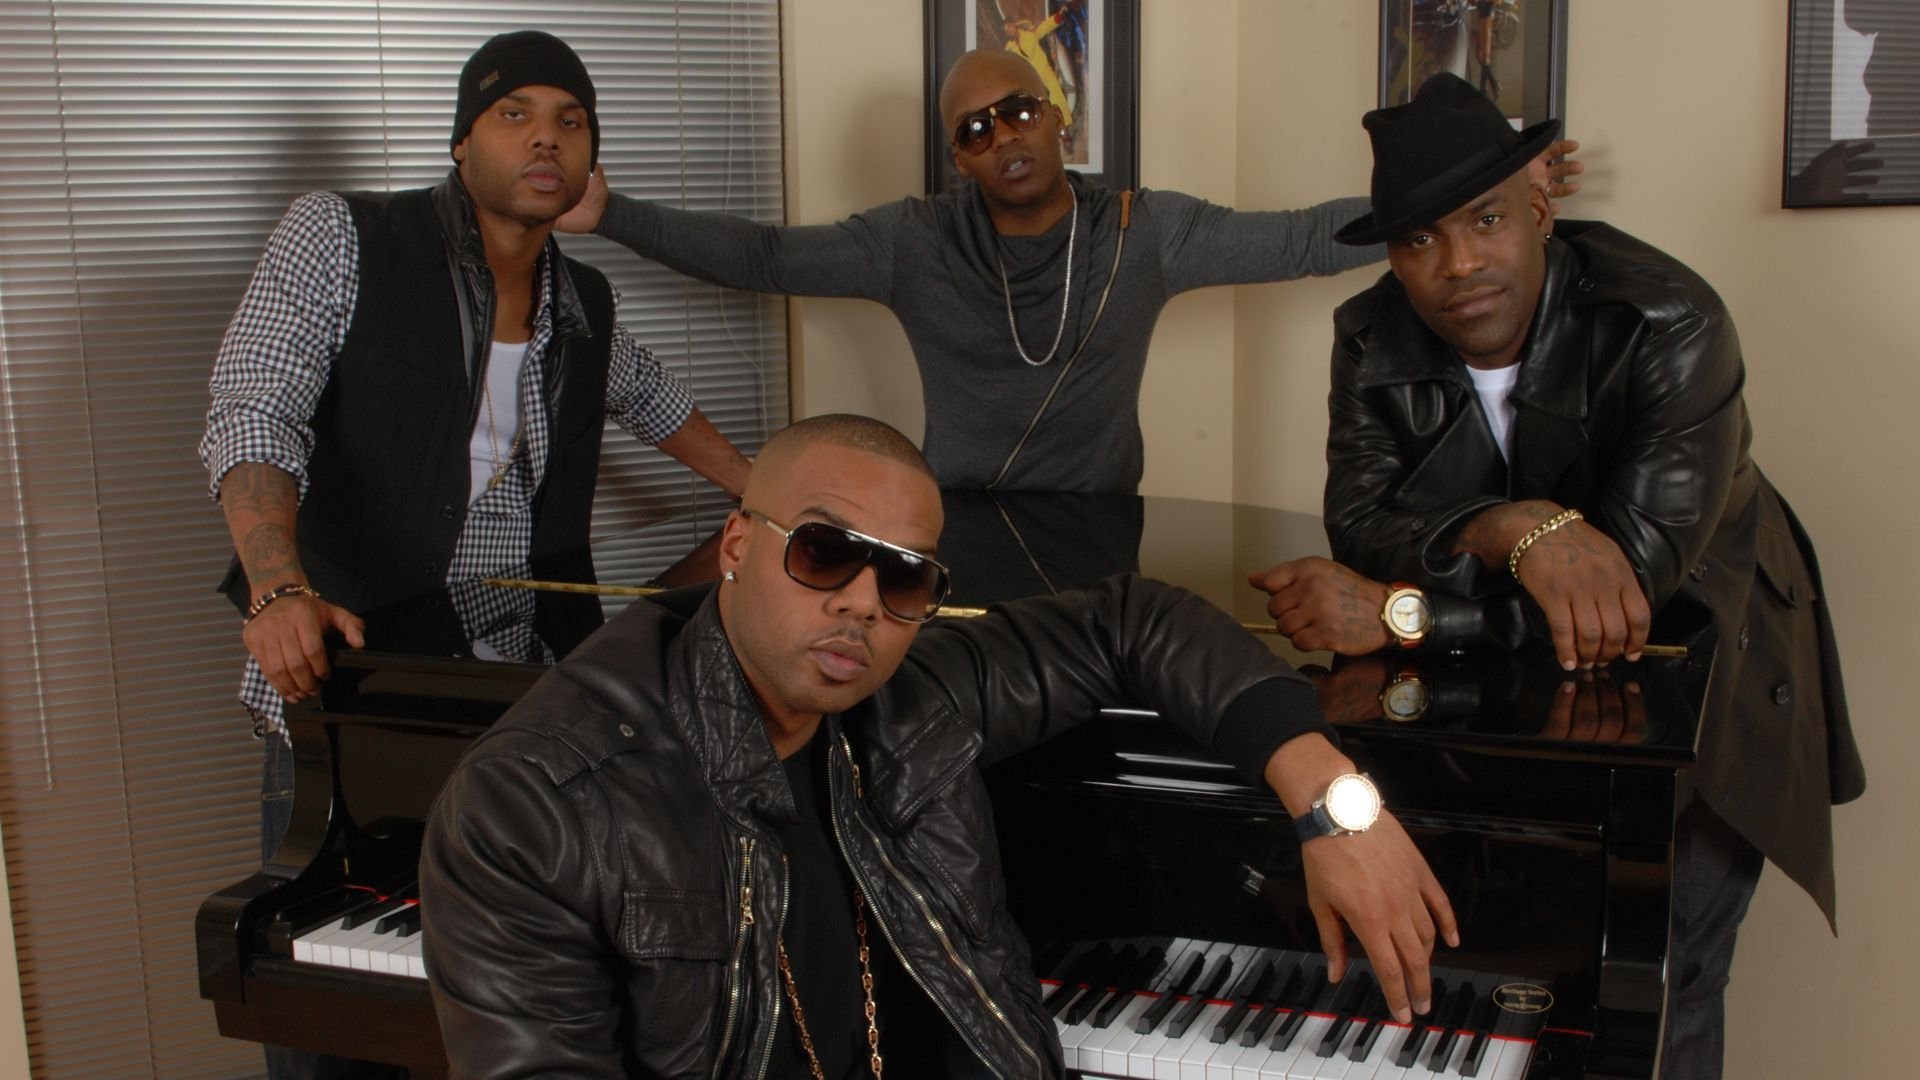 Jagged Edge Images